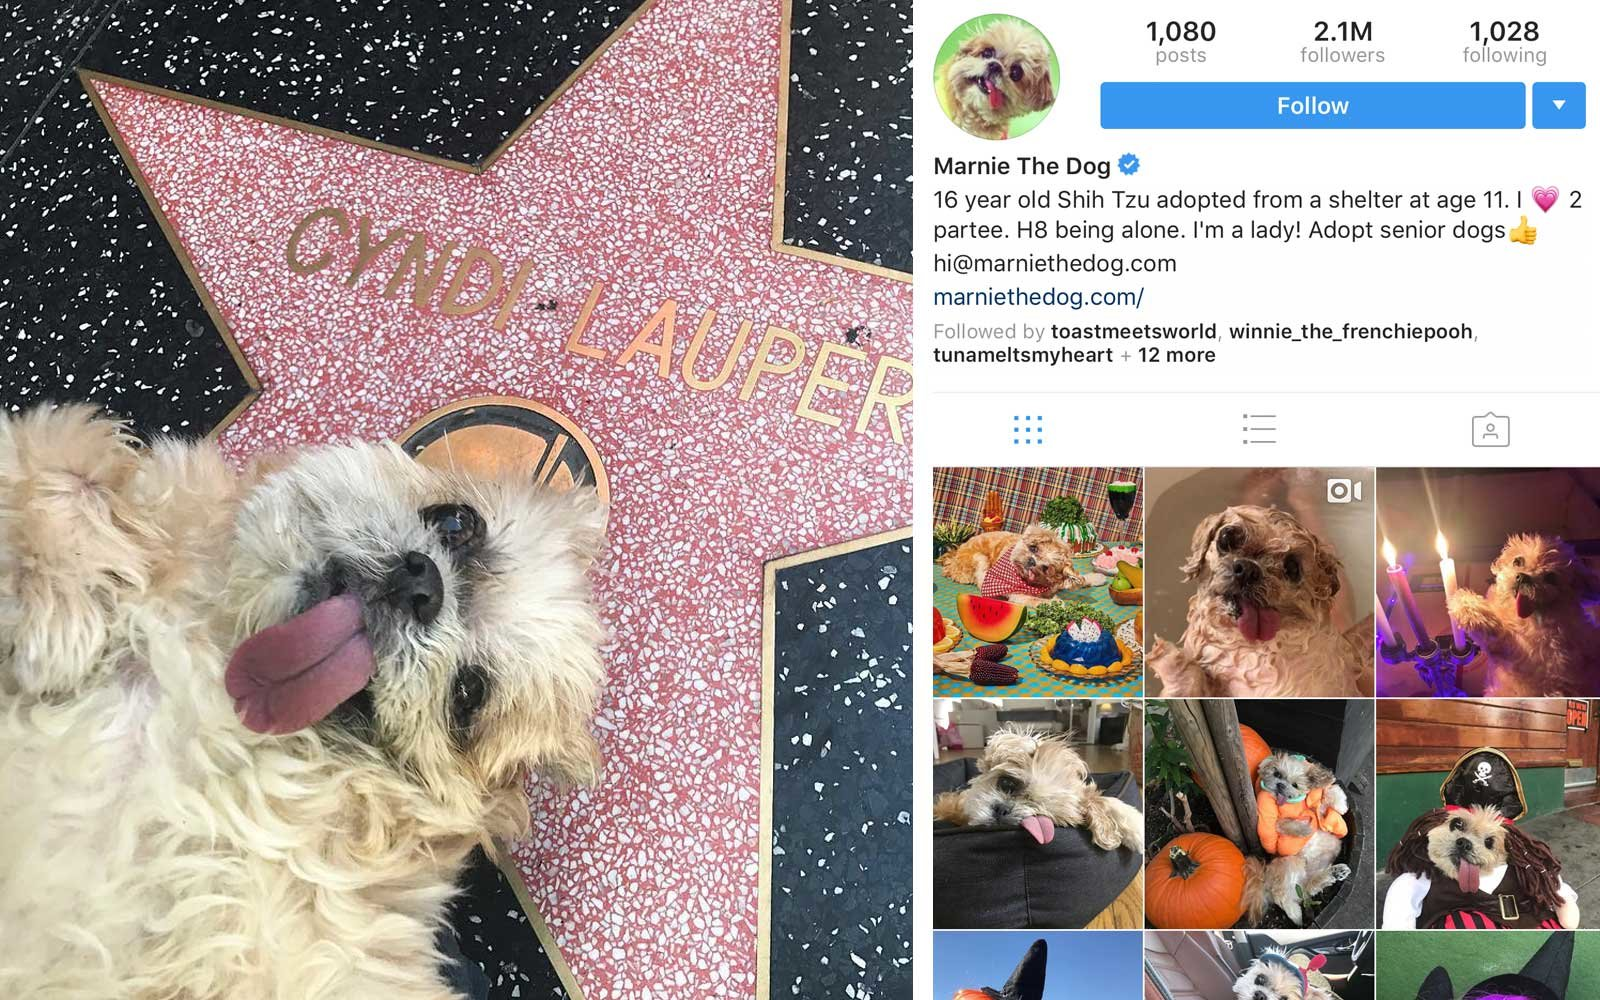 Marnie the Dog (@marniethedog) - Shih Tzu, US - 2.1M Followers